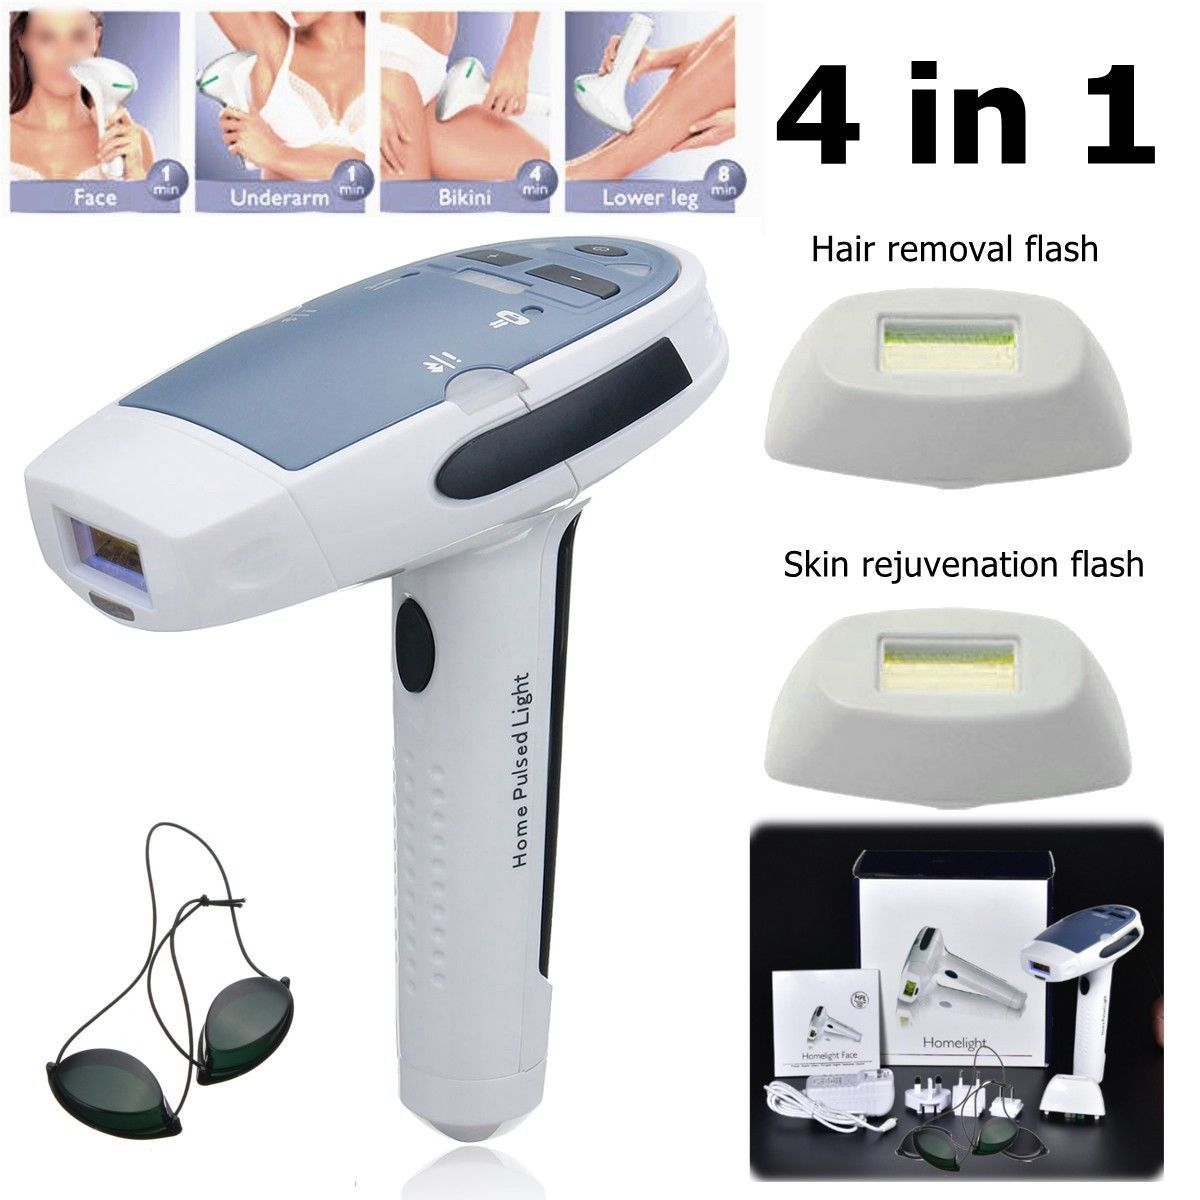 4 In1 IPL Permanent Laser Hair Removal Machine Full Body Epilator Home Use Remover Depilator Bikini Electric Trimmer Depilador